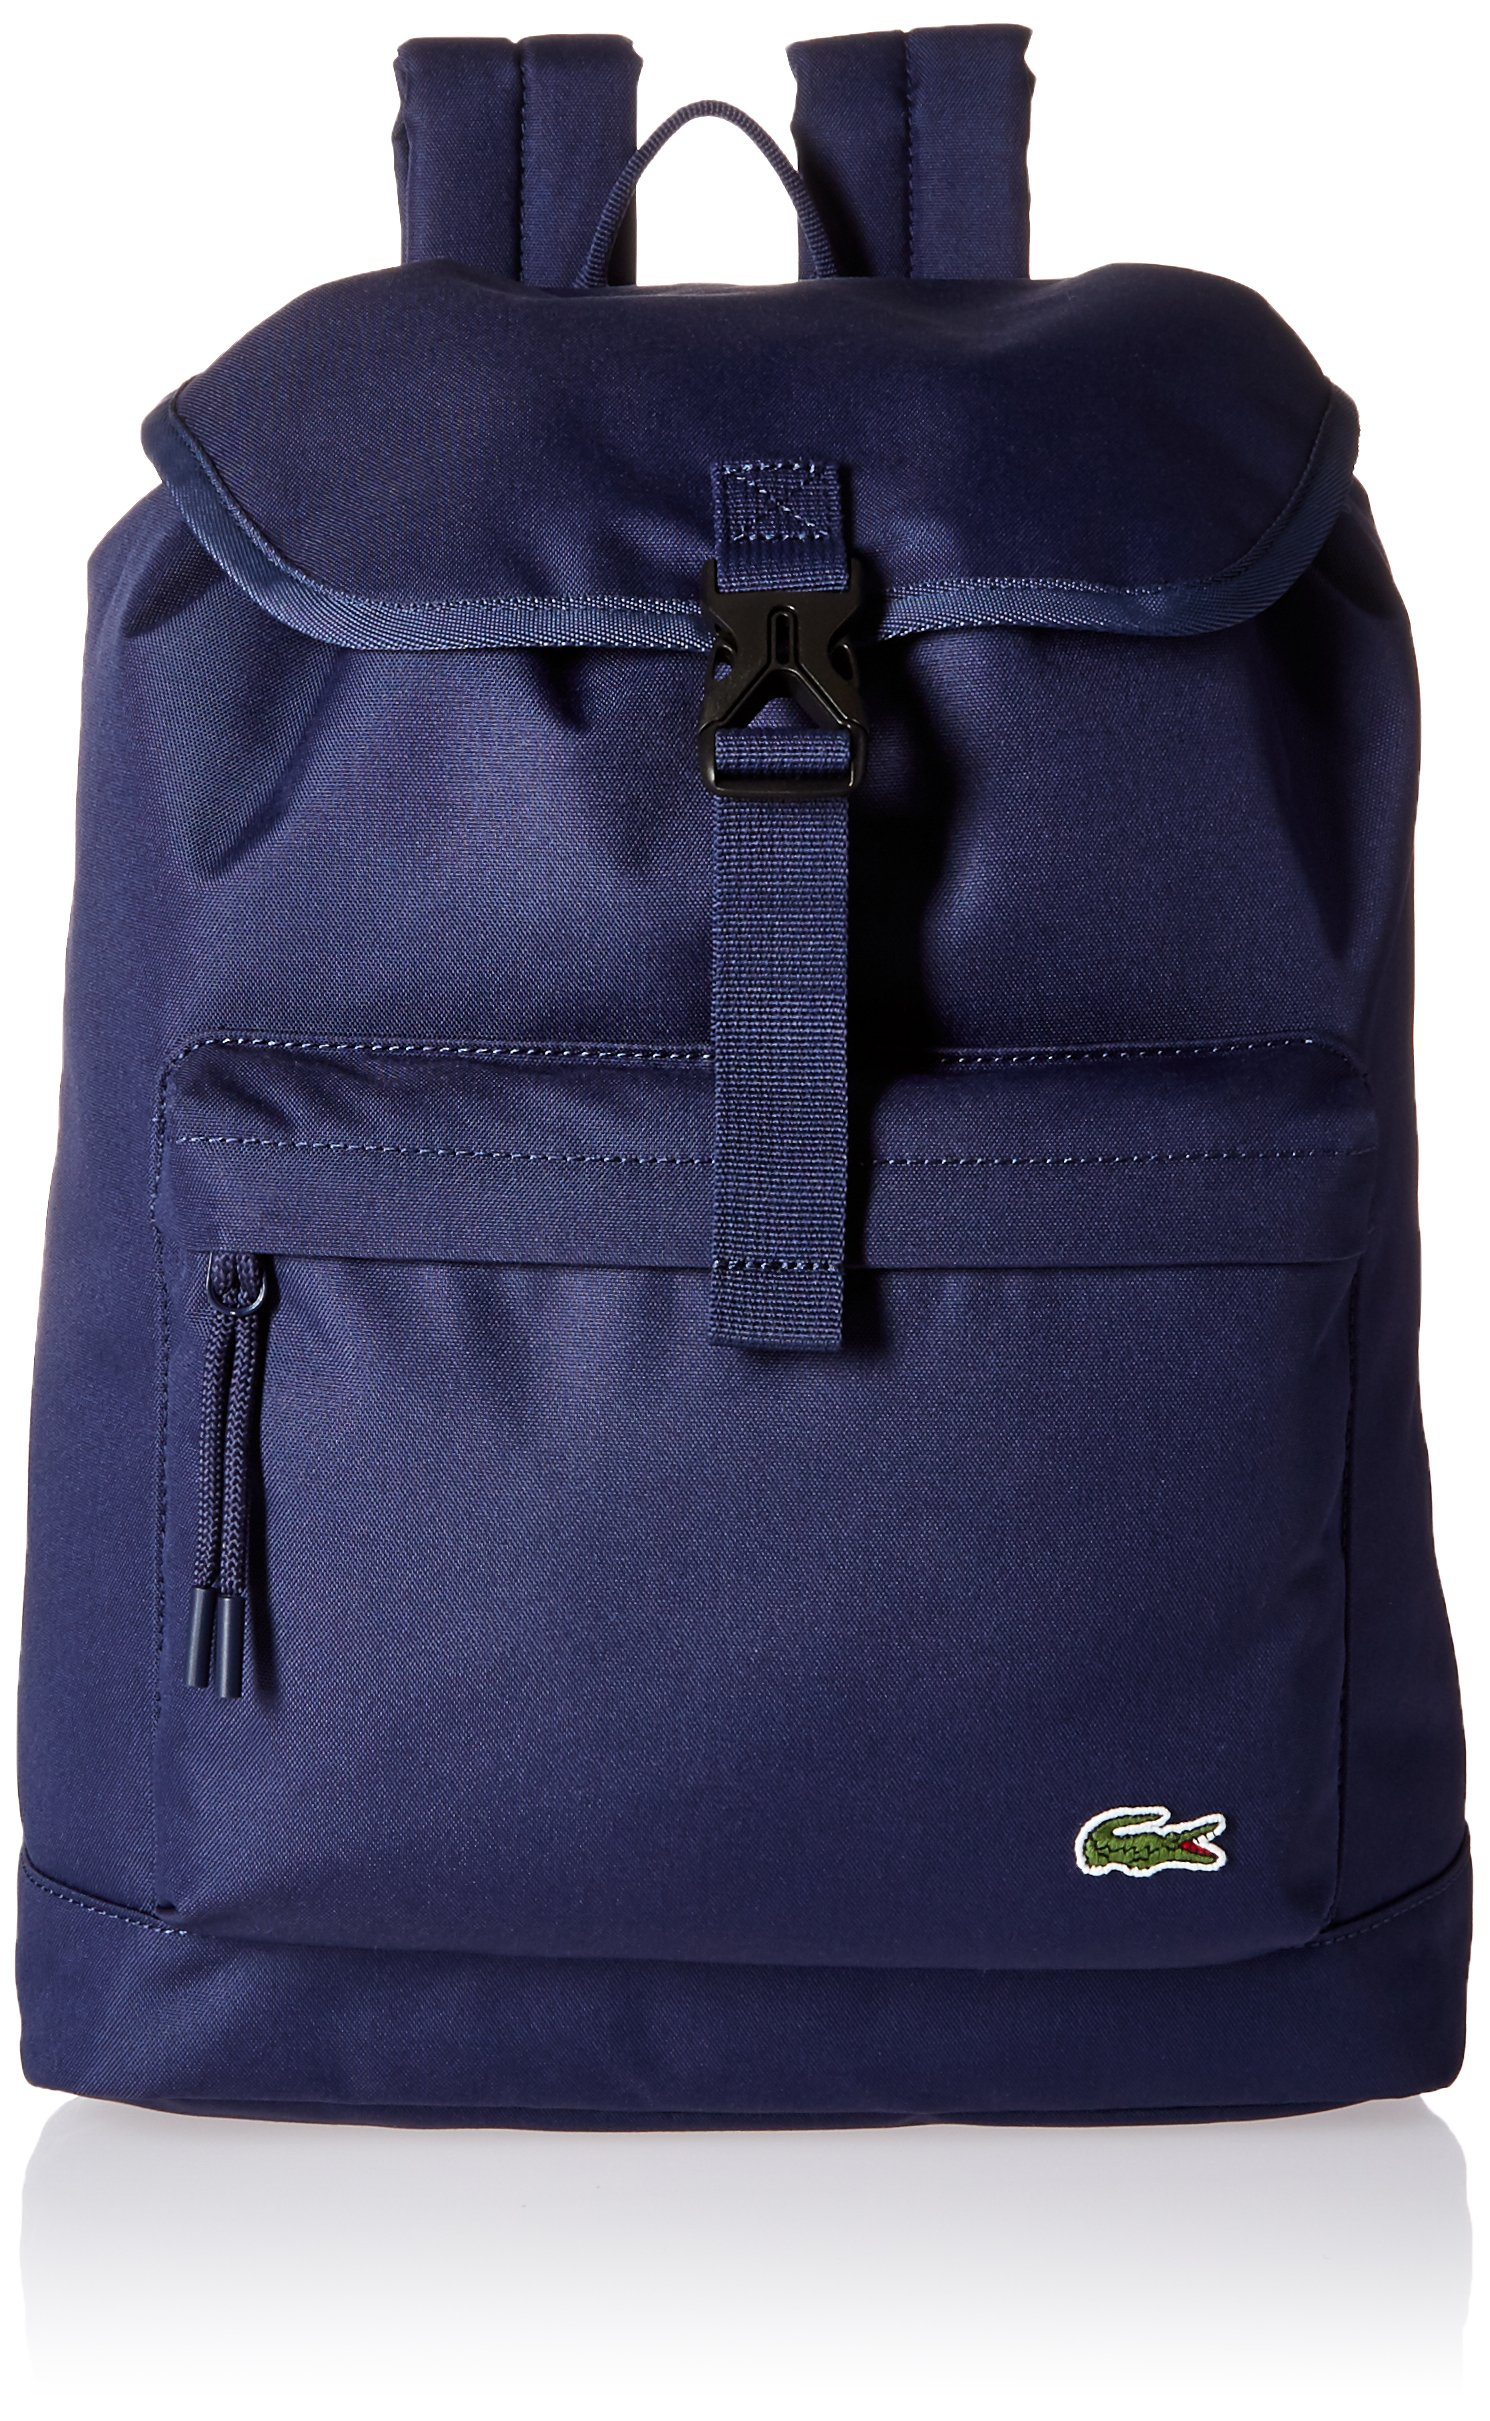 Lacoste Men's Flap Backpack, Peacoat